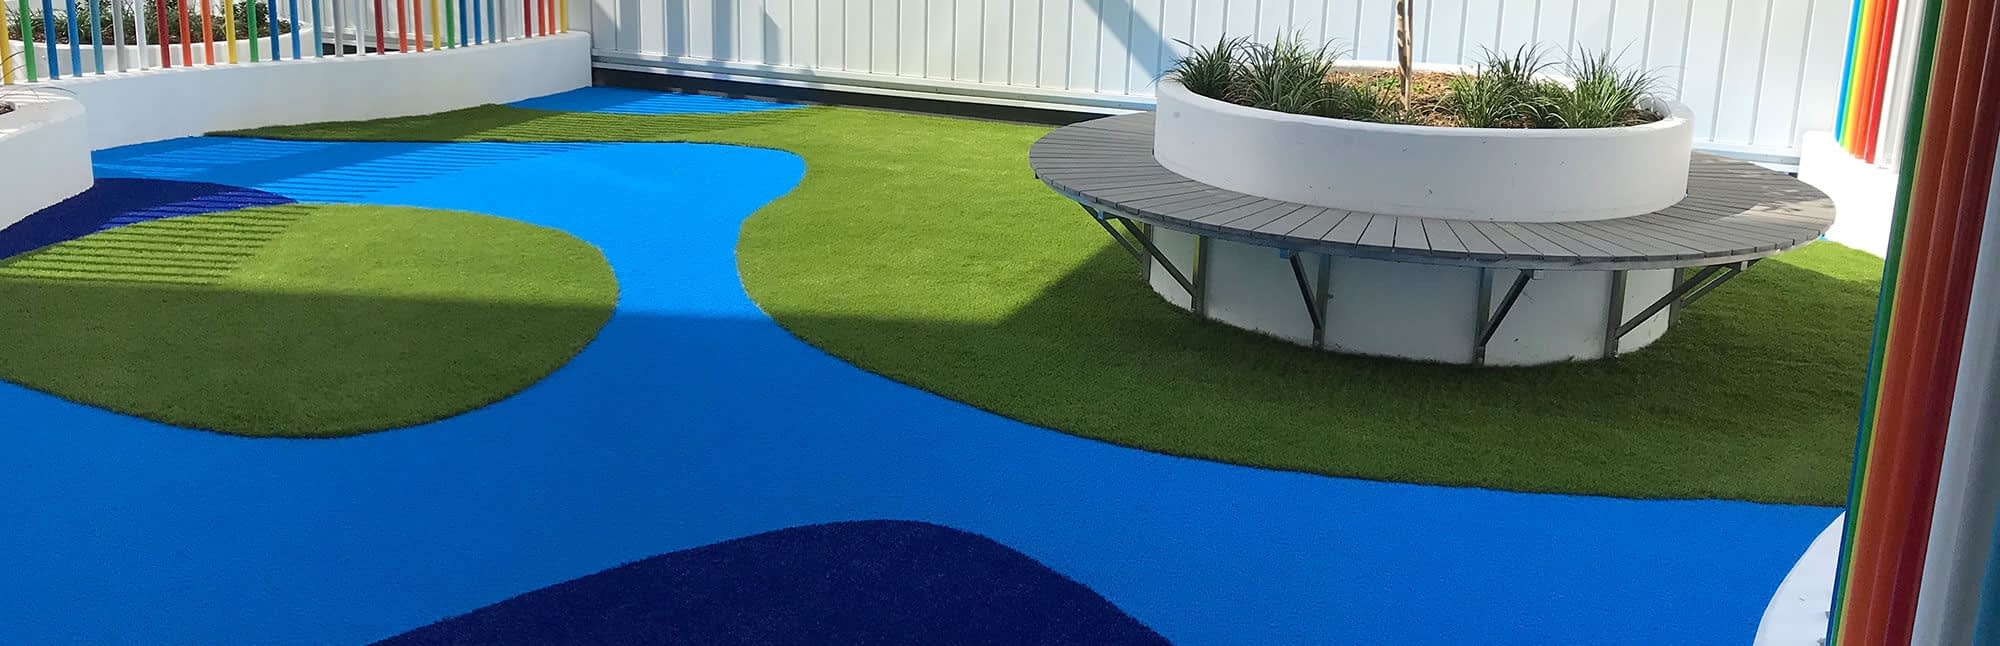 Multi Play Artificial Turf